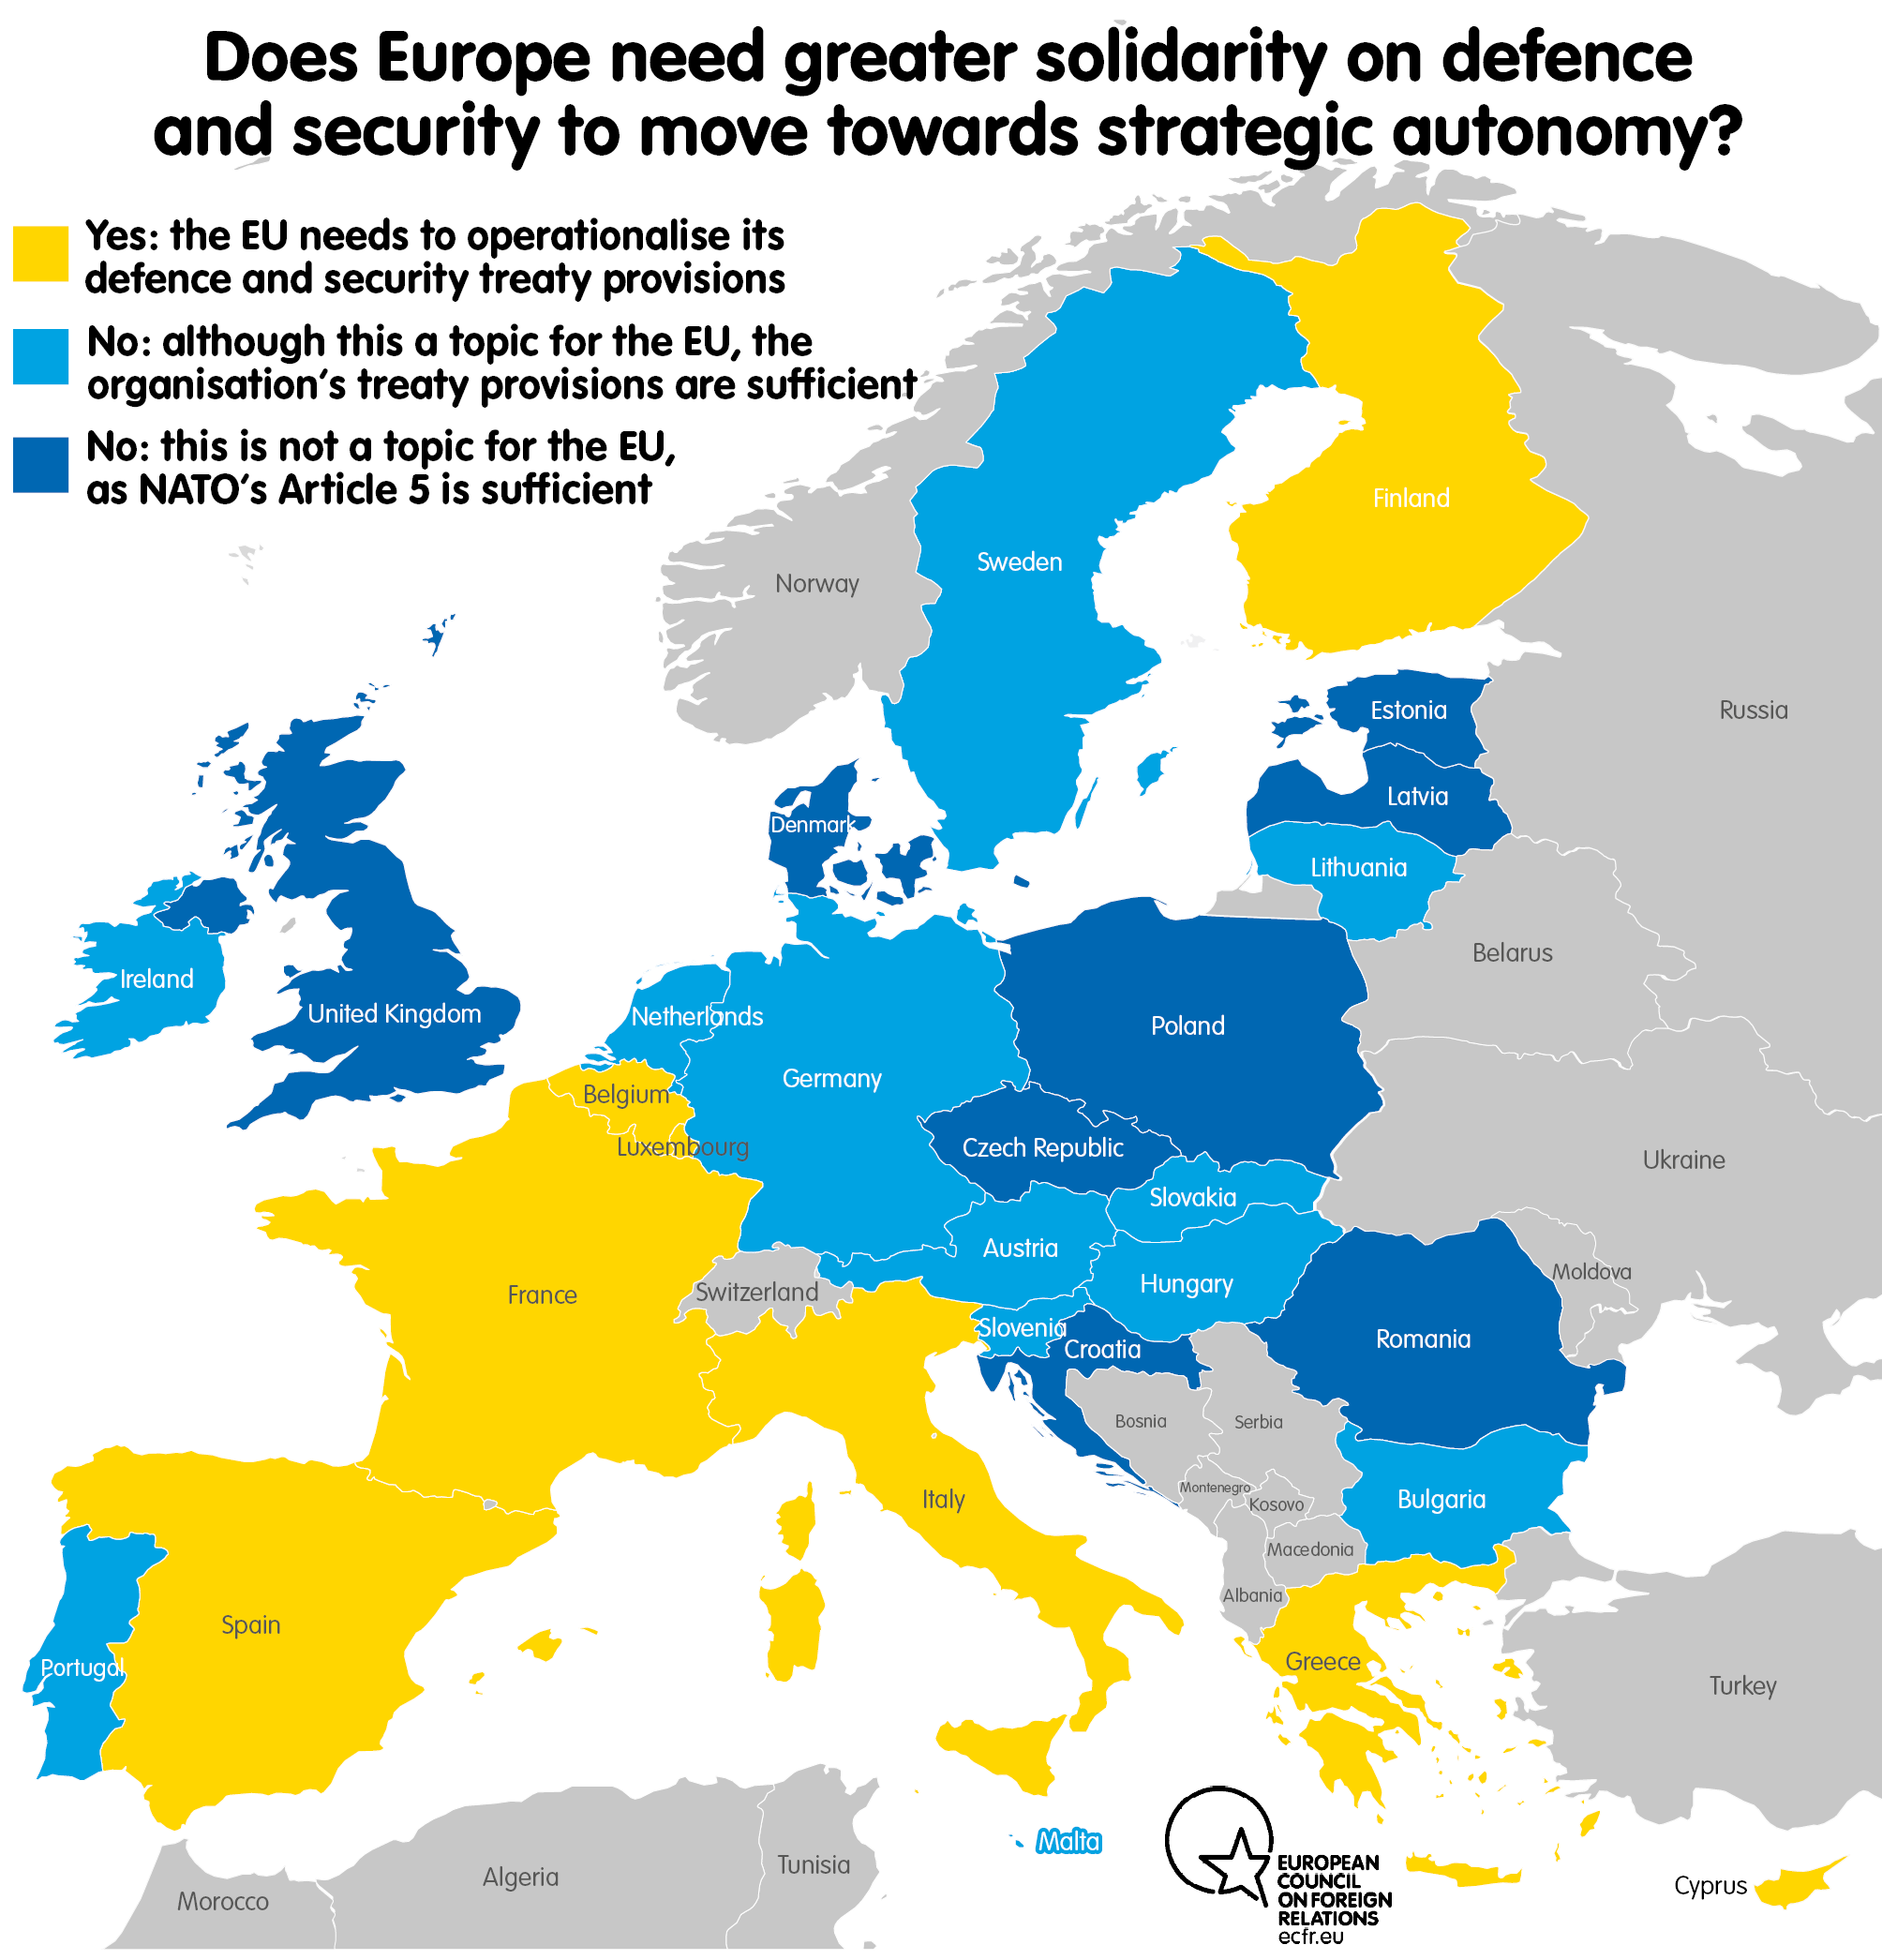 Is more solidarity on defence and security needed to move towards European Strategic Autonomy